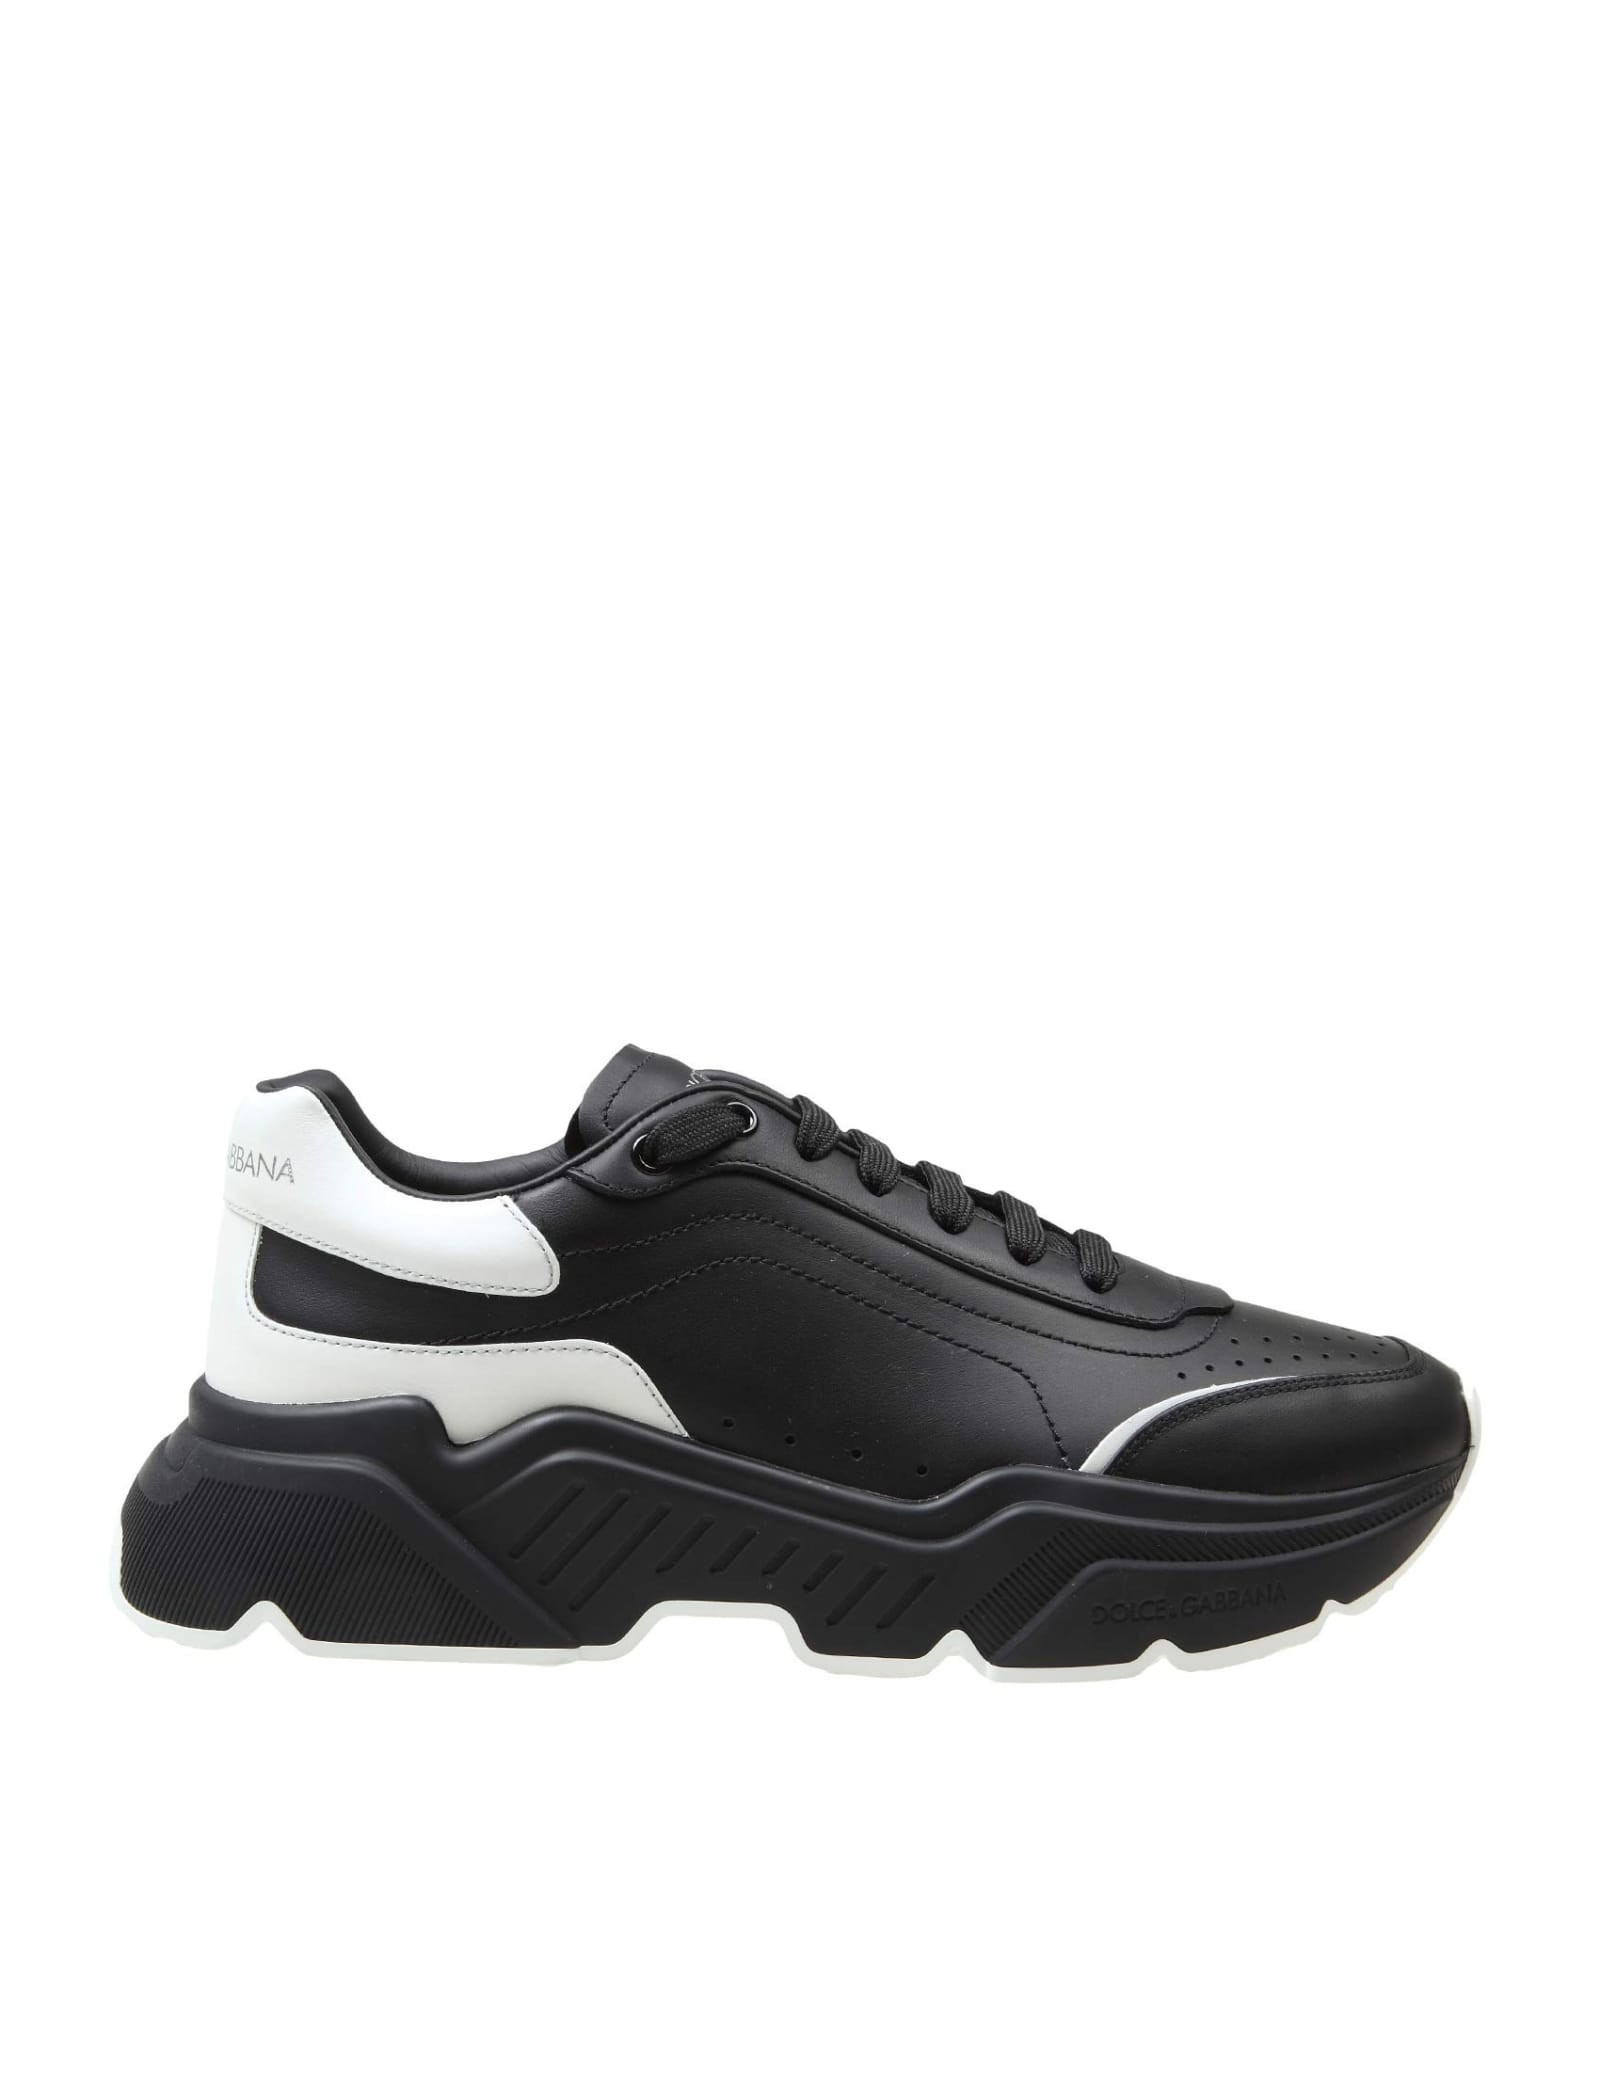 Dolce & Gabbana BLACK LEATHER DAYMASTER SNEAKERS